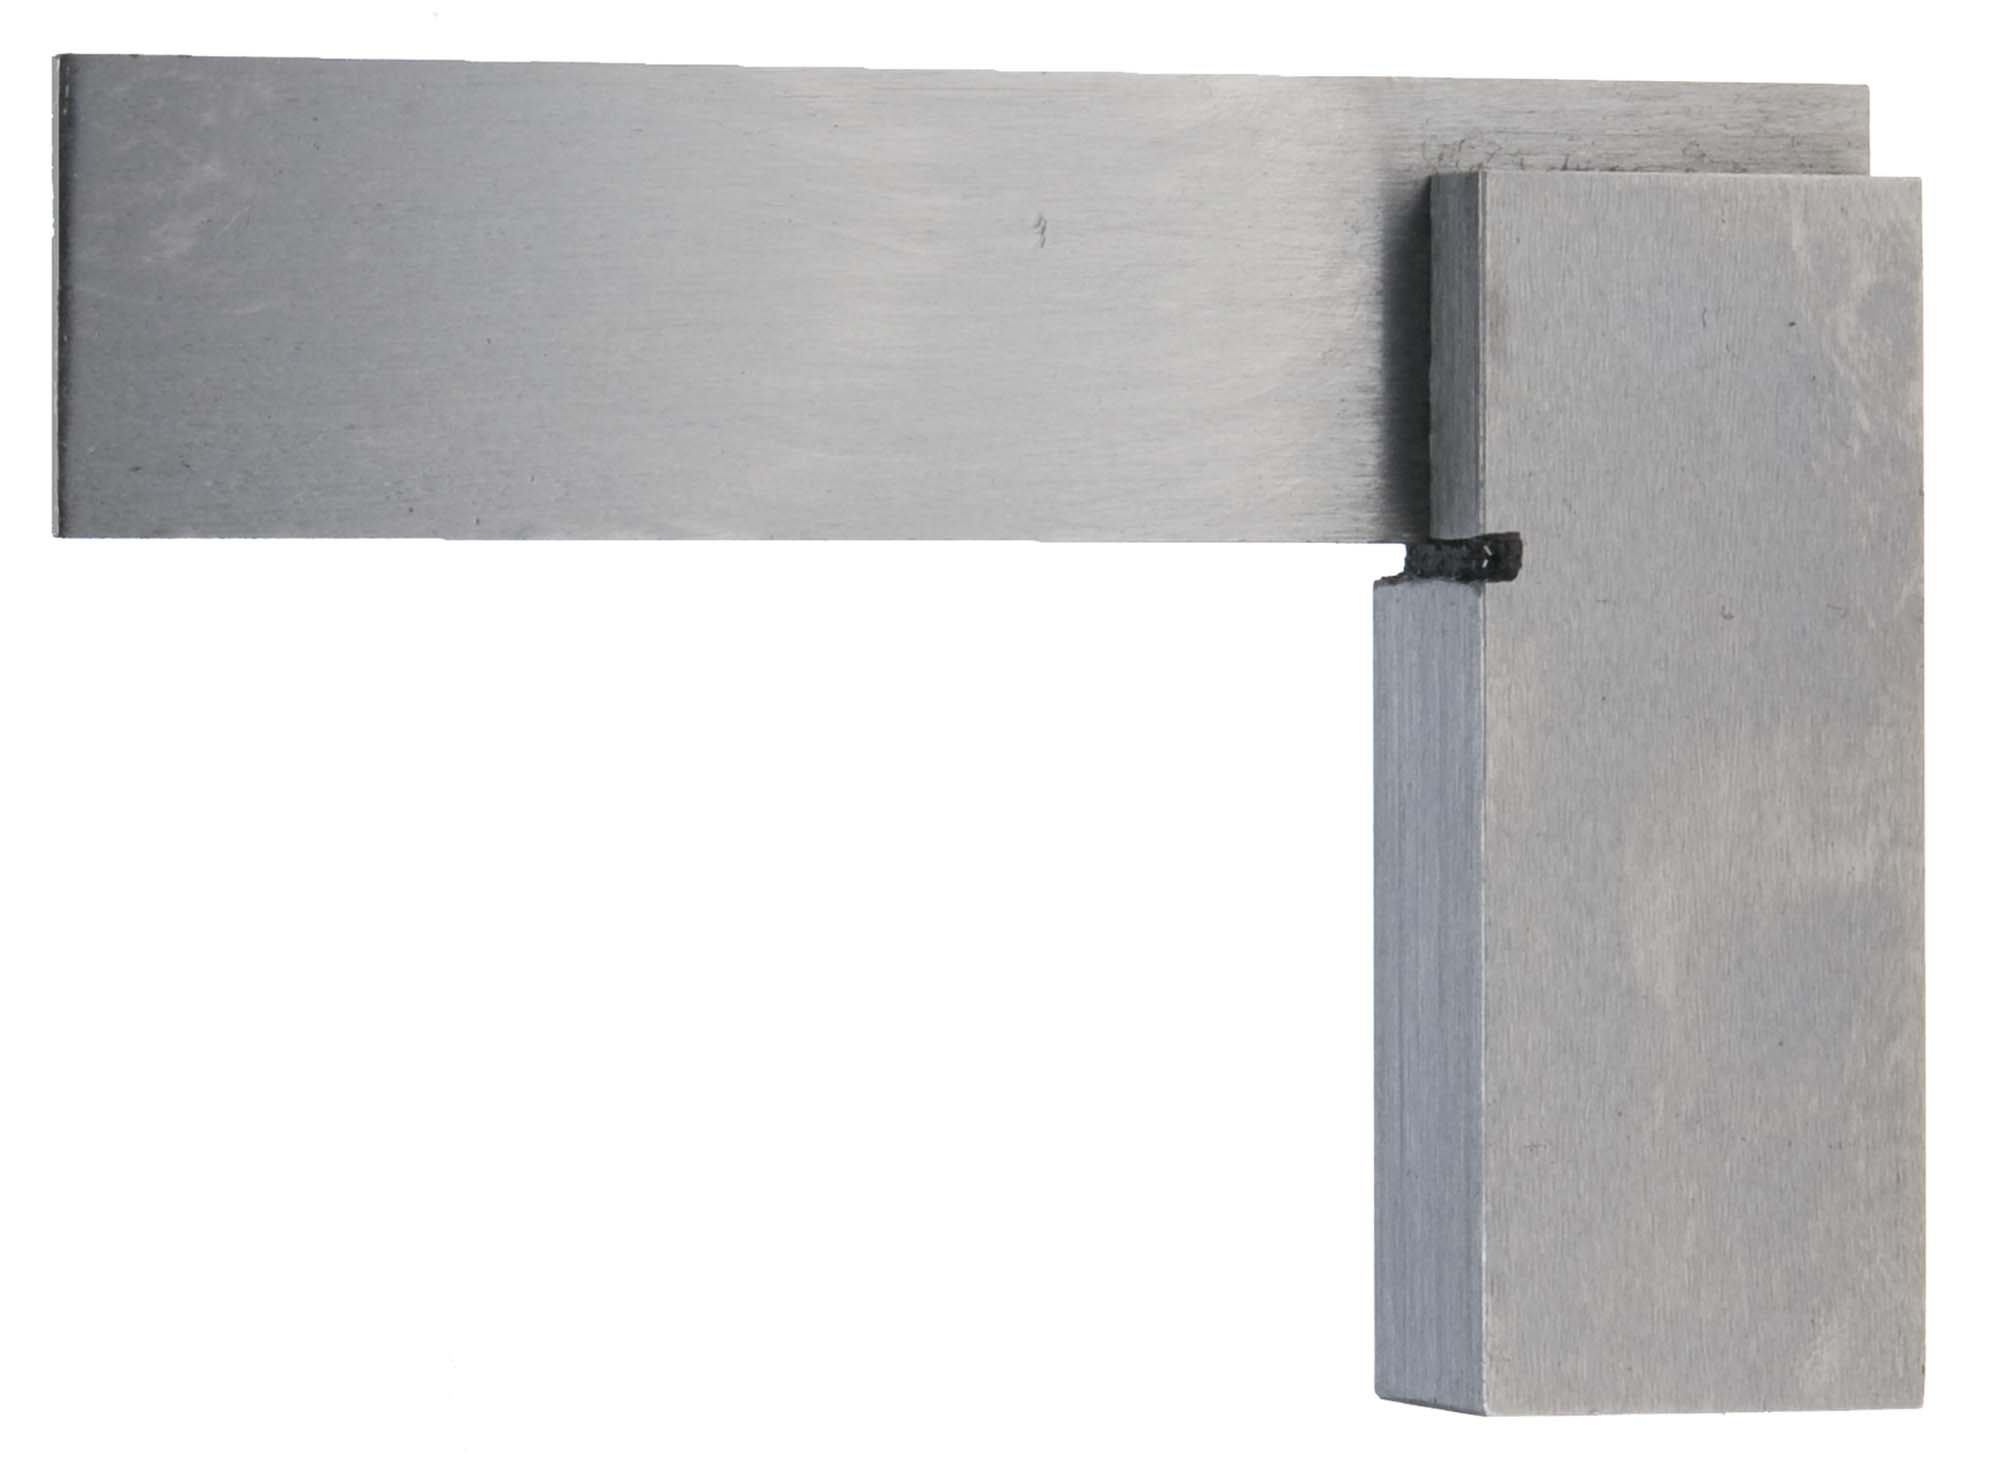 "SQ-2  2"" Hardened Steel Square"